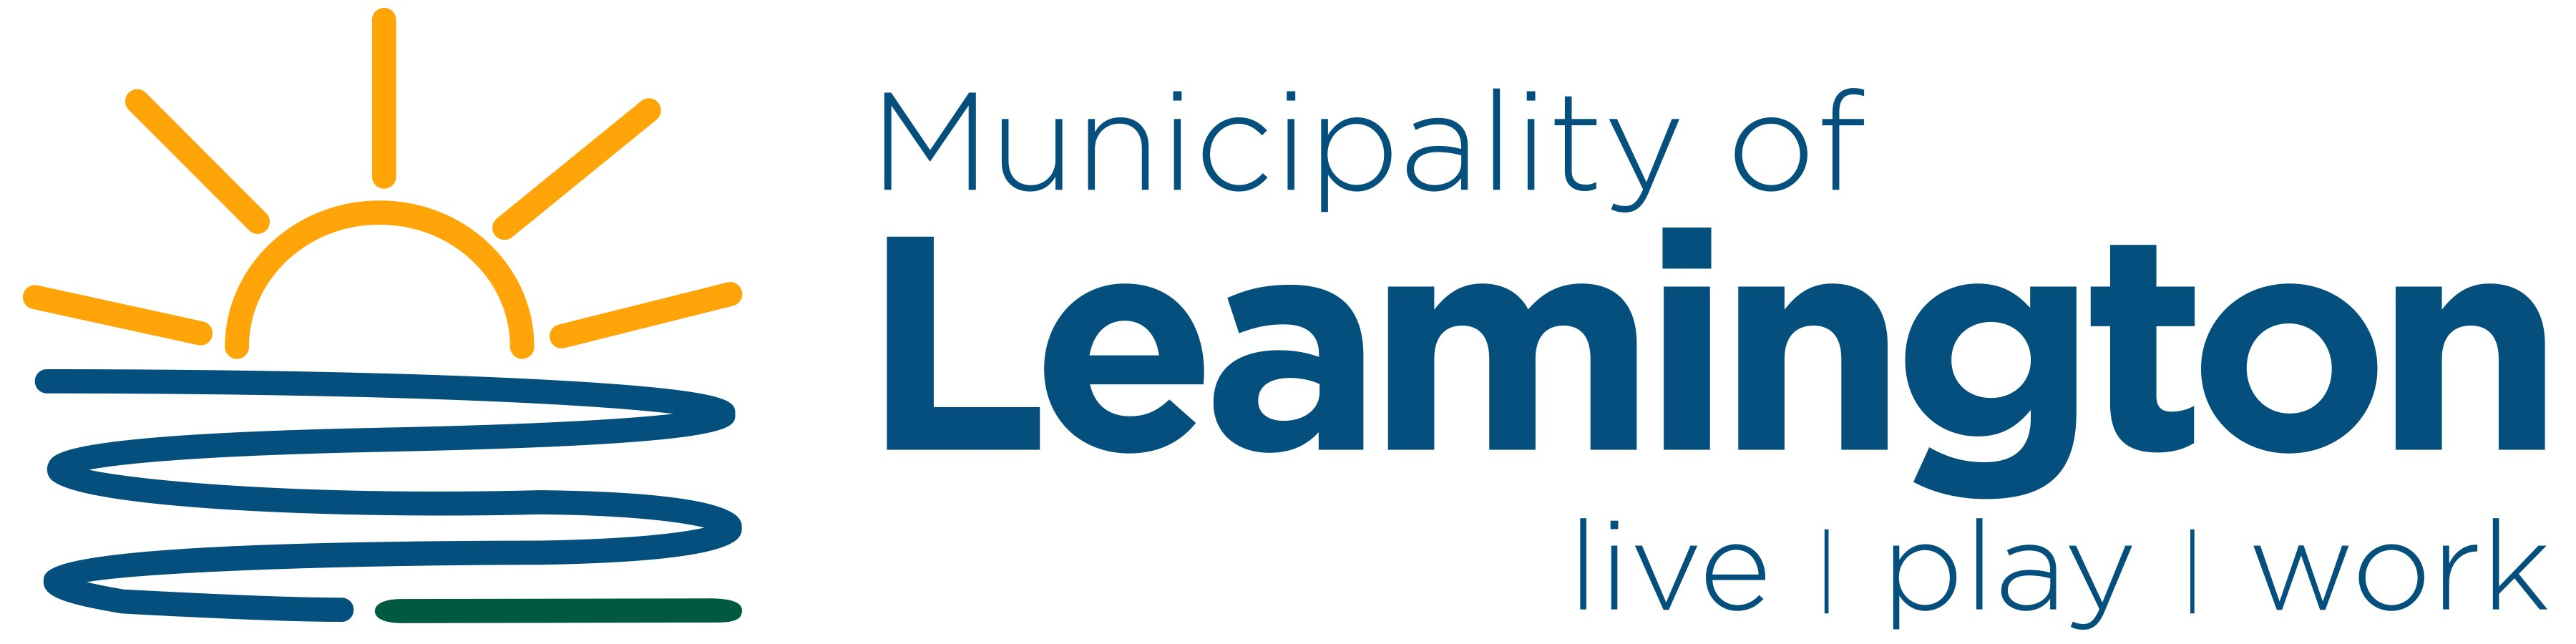 Leamington Municipal Logo